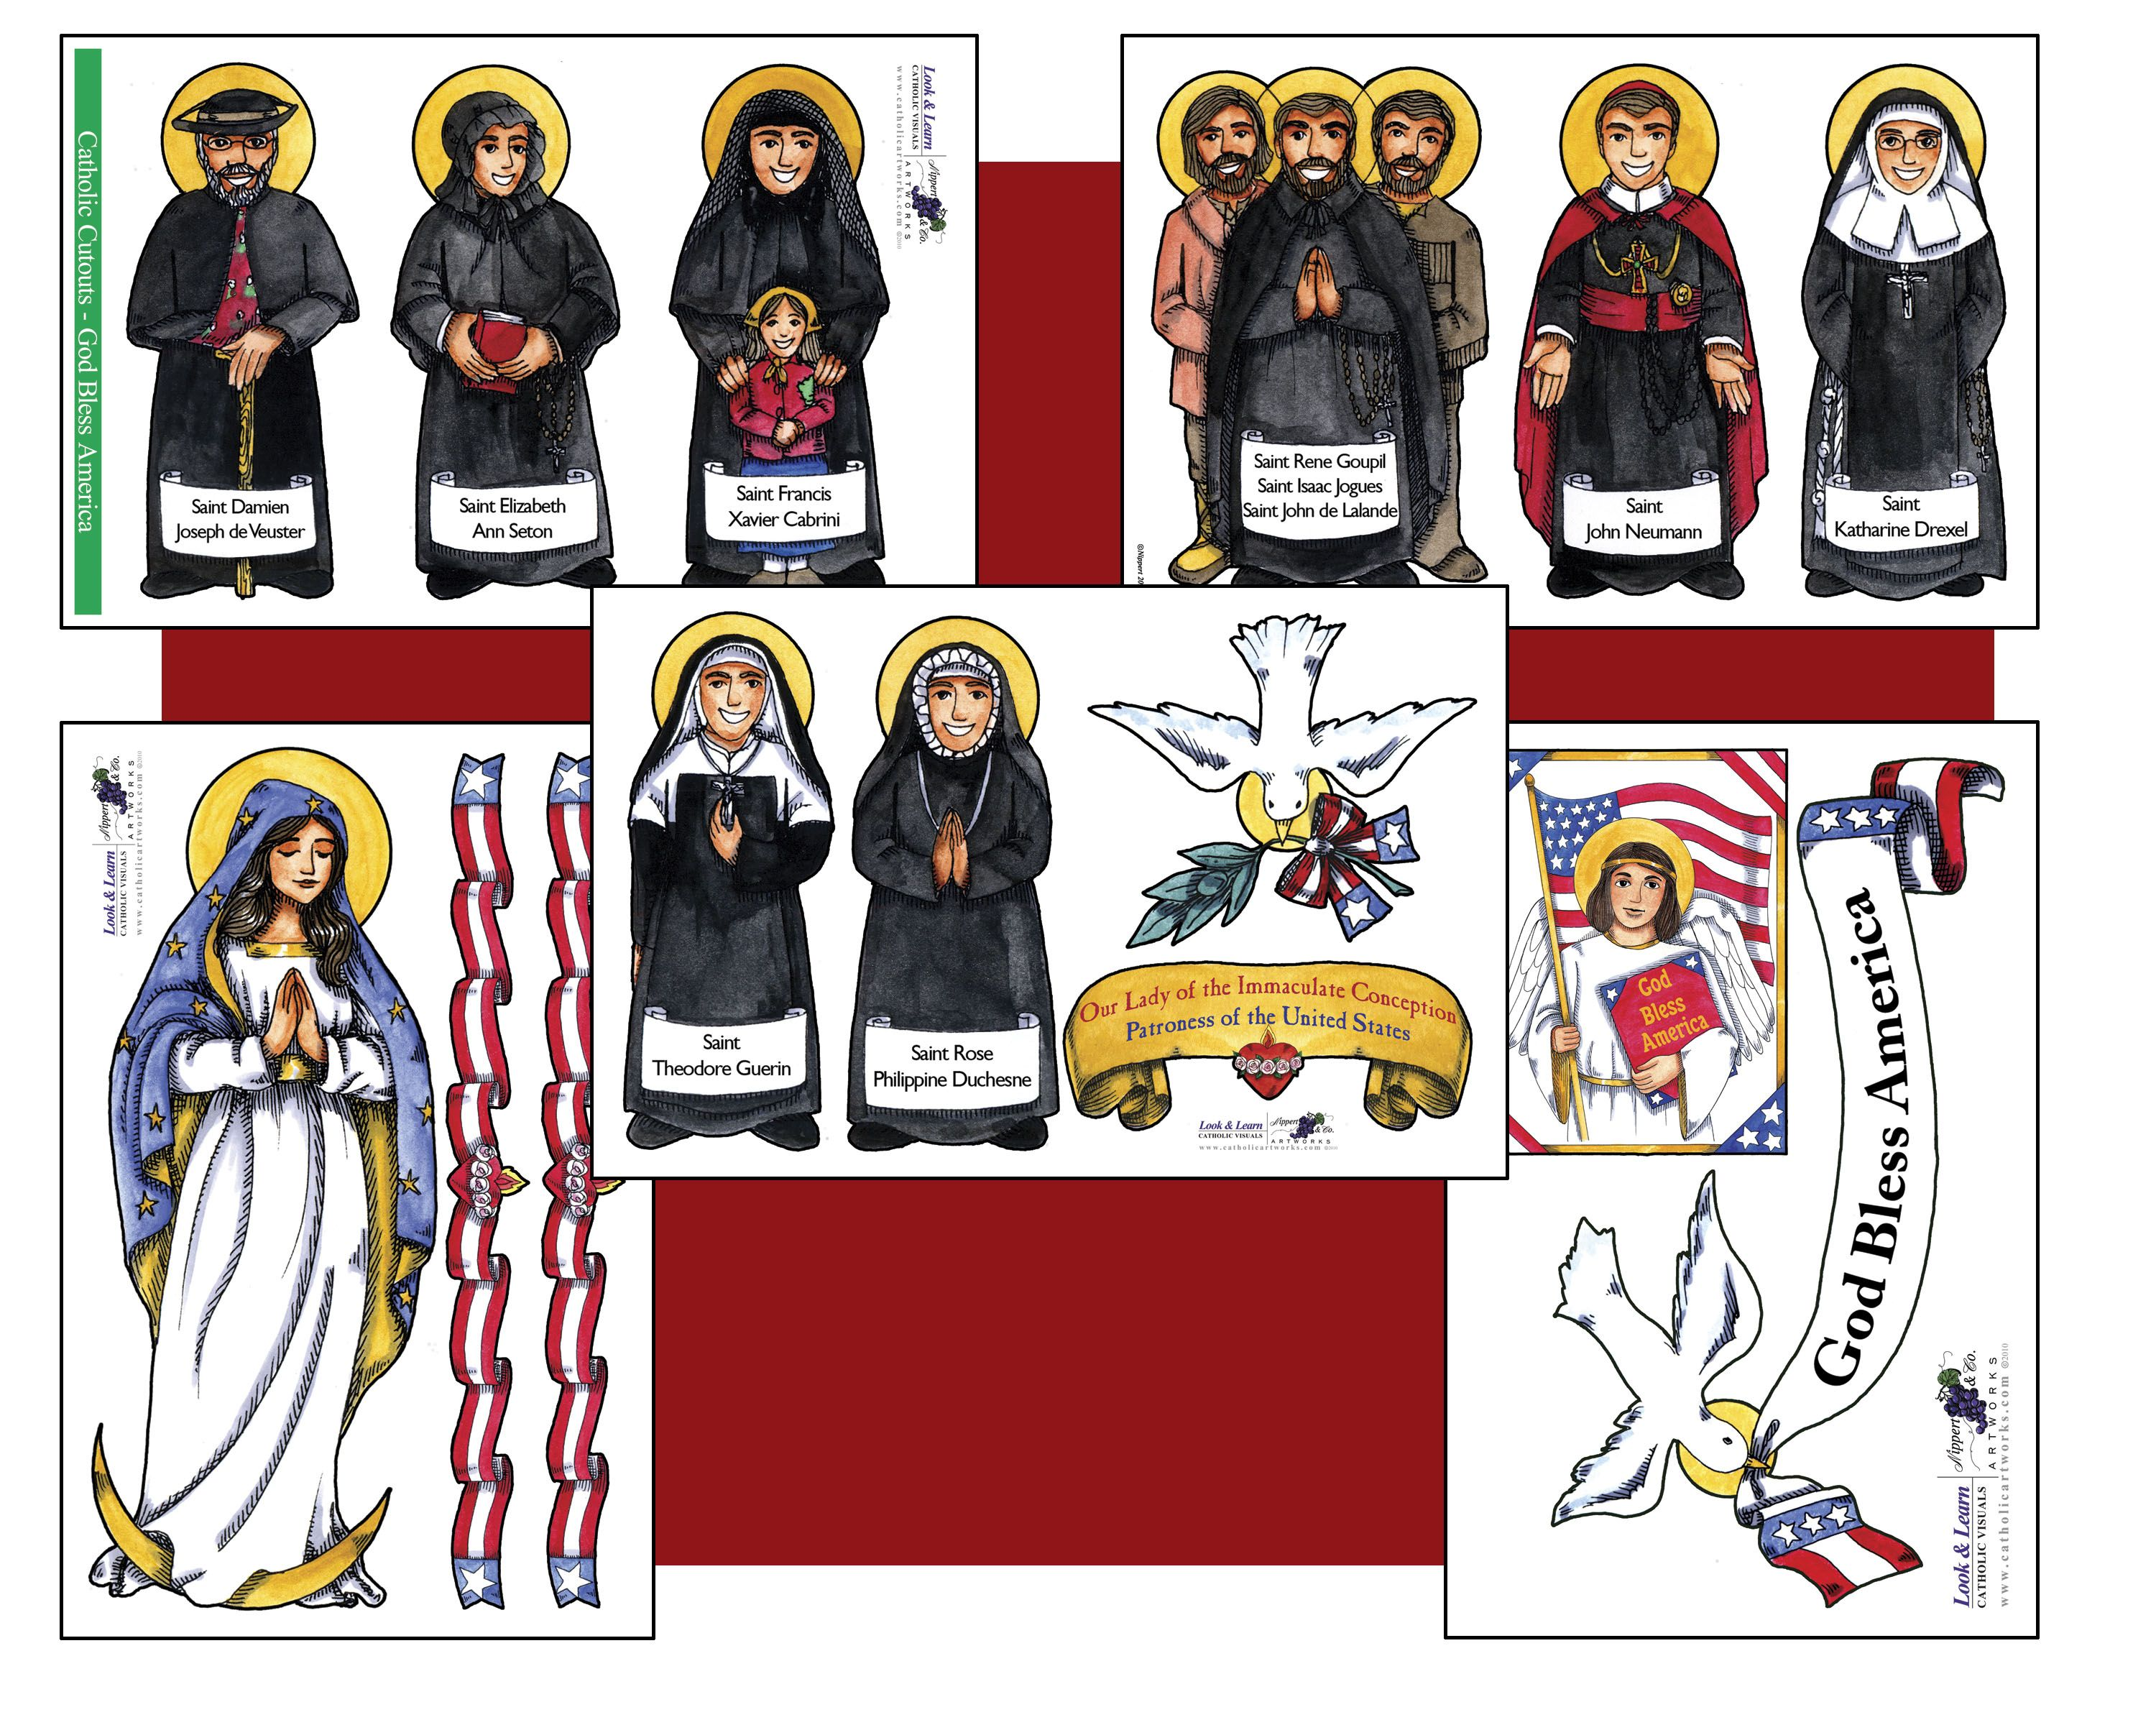 Look_and_Learn_Cutouts American Saints | Catholic family education ...